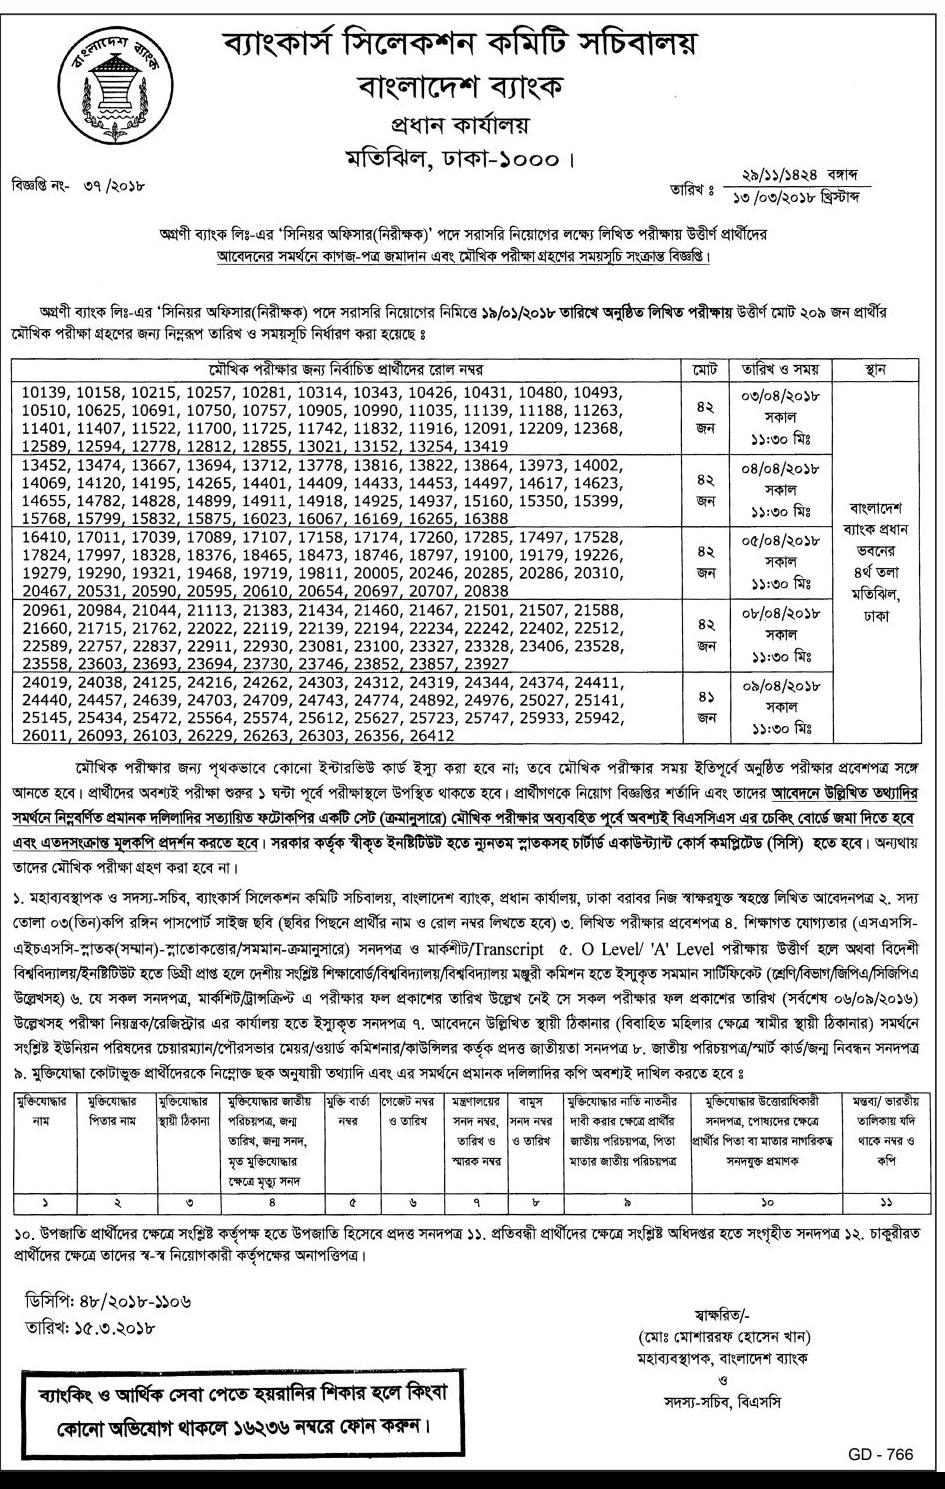 Agrani Bank Limited (ABL) Senior Officer (Audit)  Viva Exam Date, Time and Seat Plan